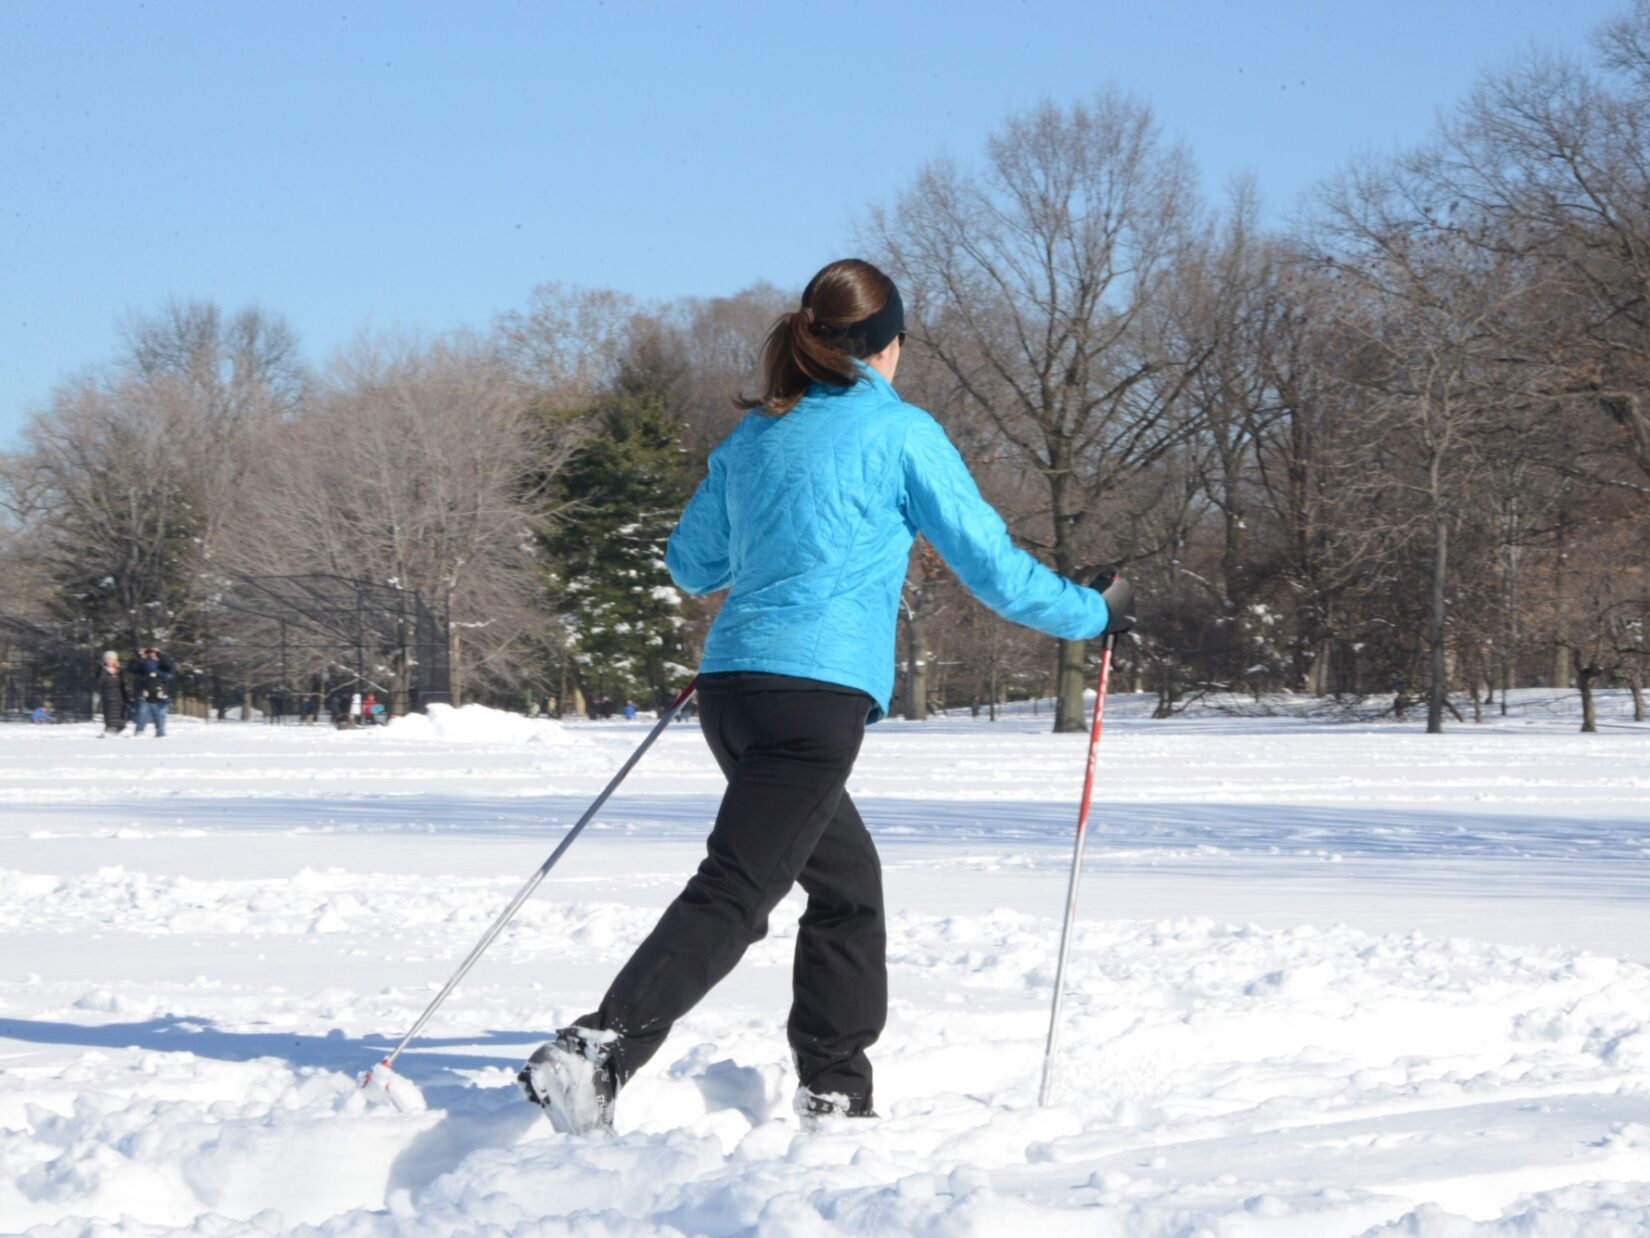 A cross-country skier crosses the Park, deep in show